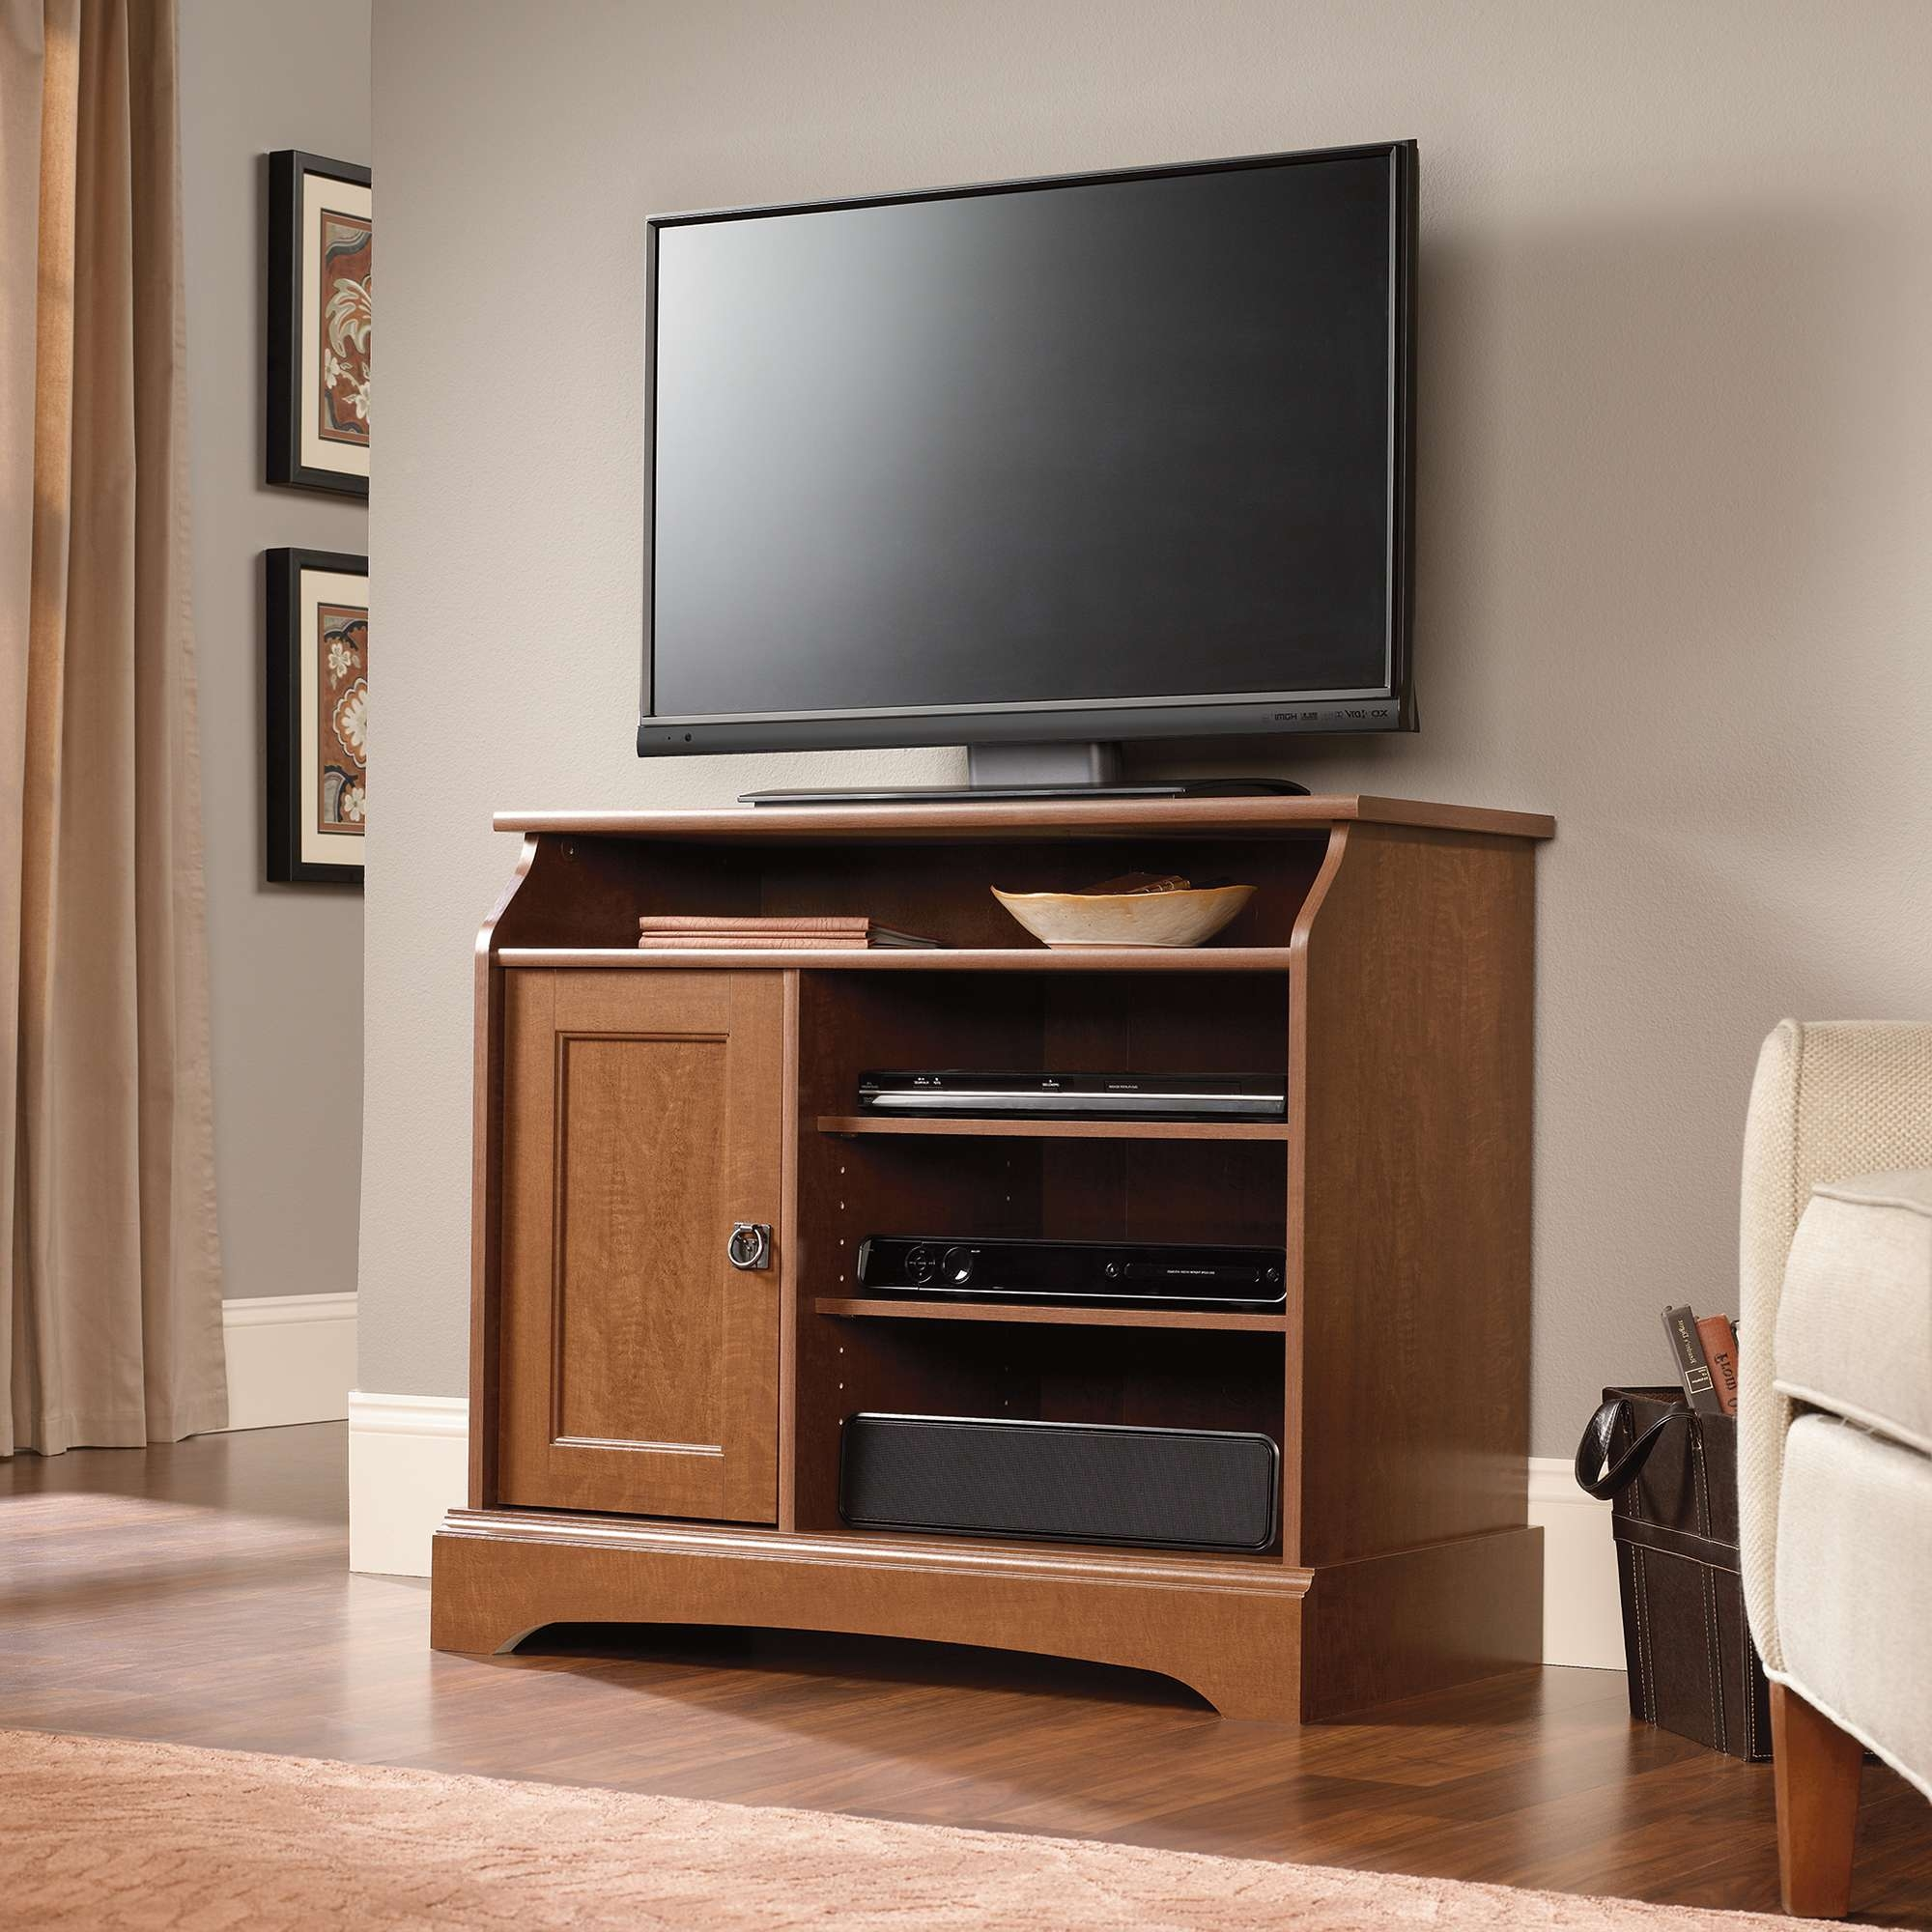 Sauder Select | Highboy Tv Stand | 408972 | Sauder With Regard To Highboy Tv Stands (View 14 of 15)